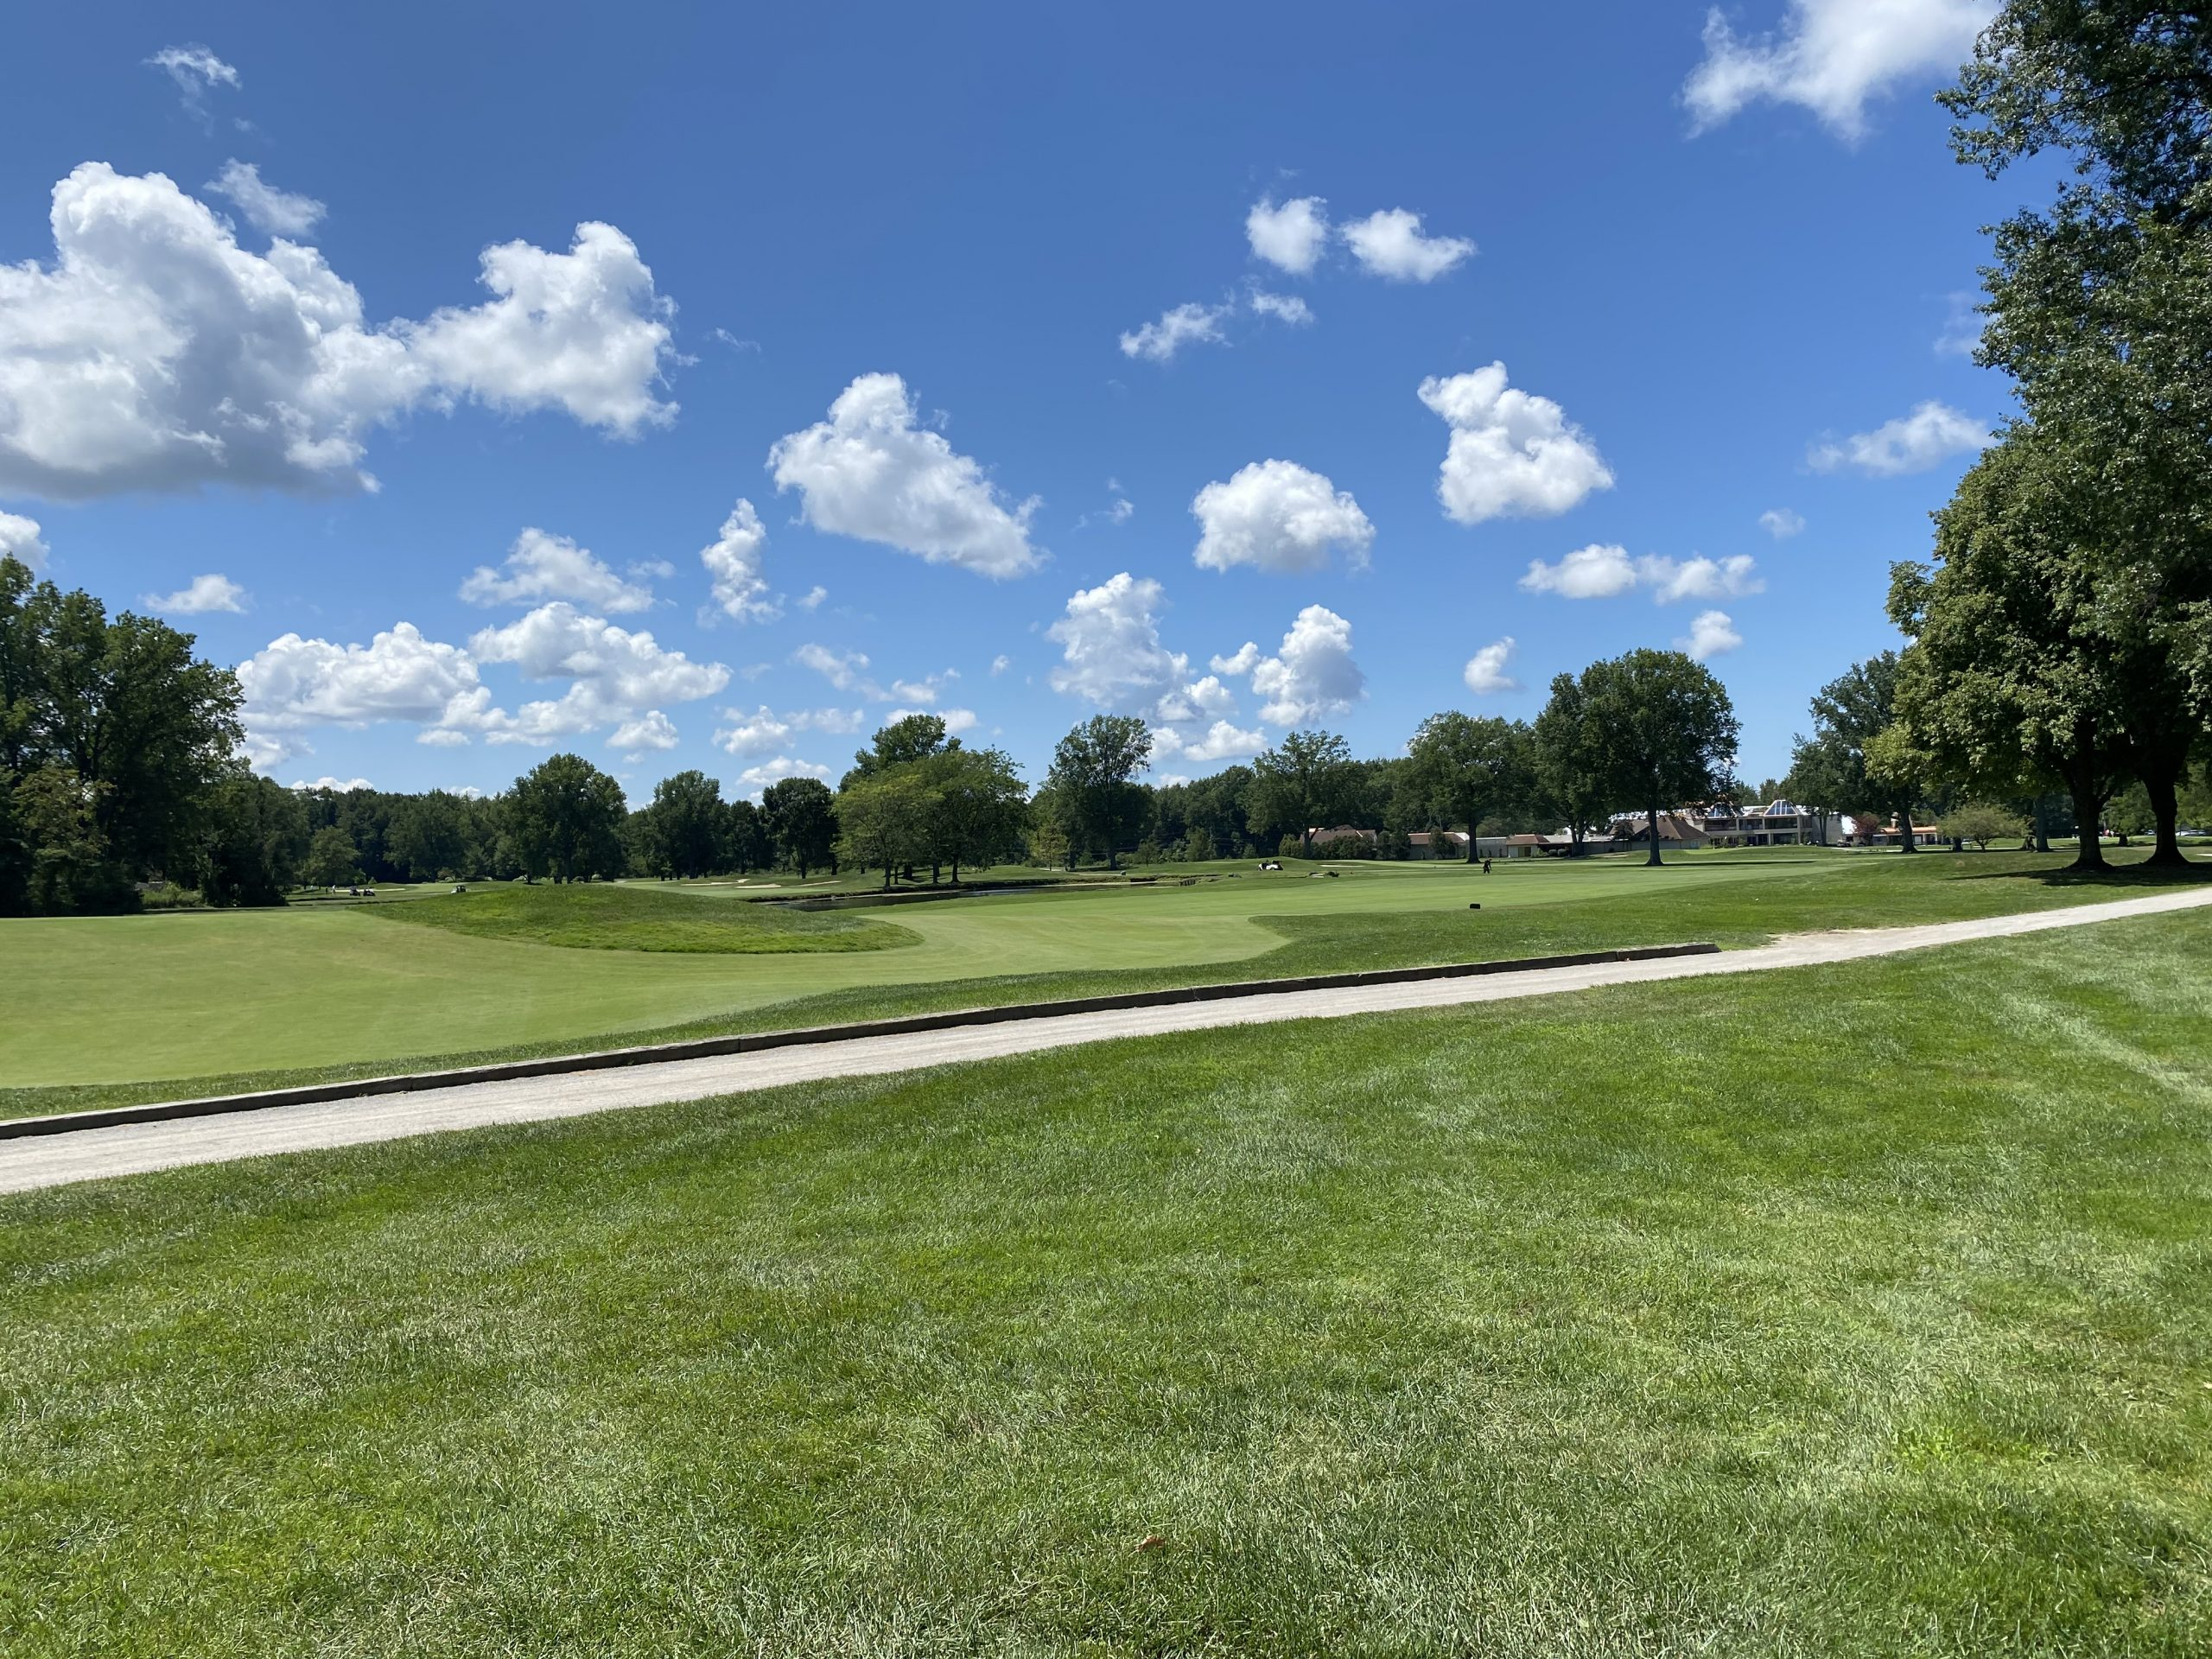 It was an absolute beautiful day to be out on the golf course for IT Support Specialists Berea at the 2021 West Shore Chamber golf outing. It was great to see many familiar faces!